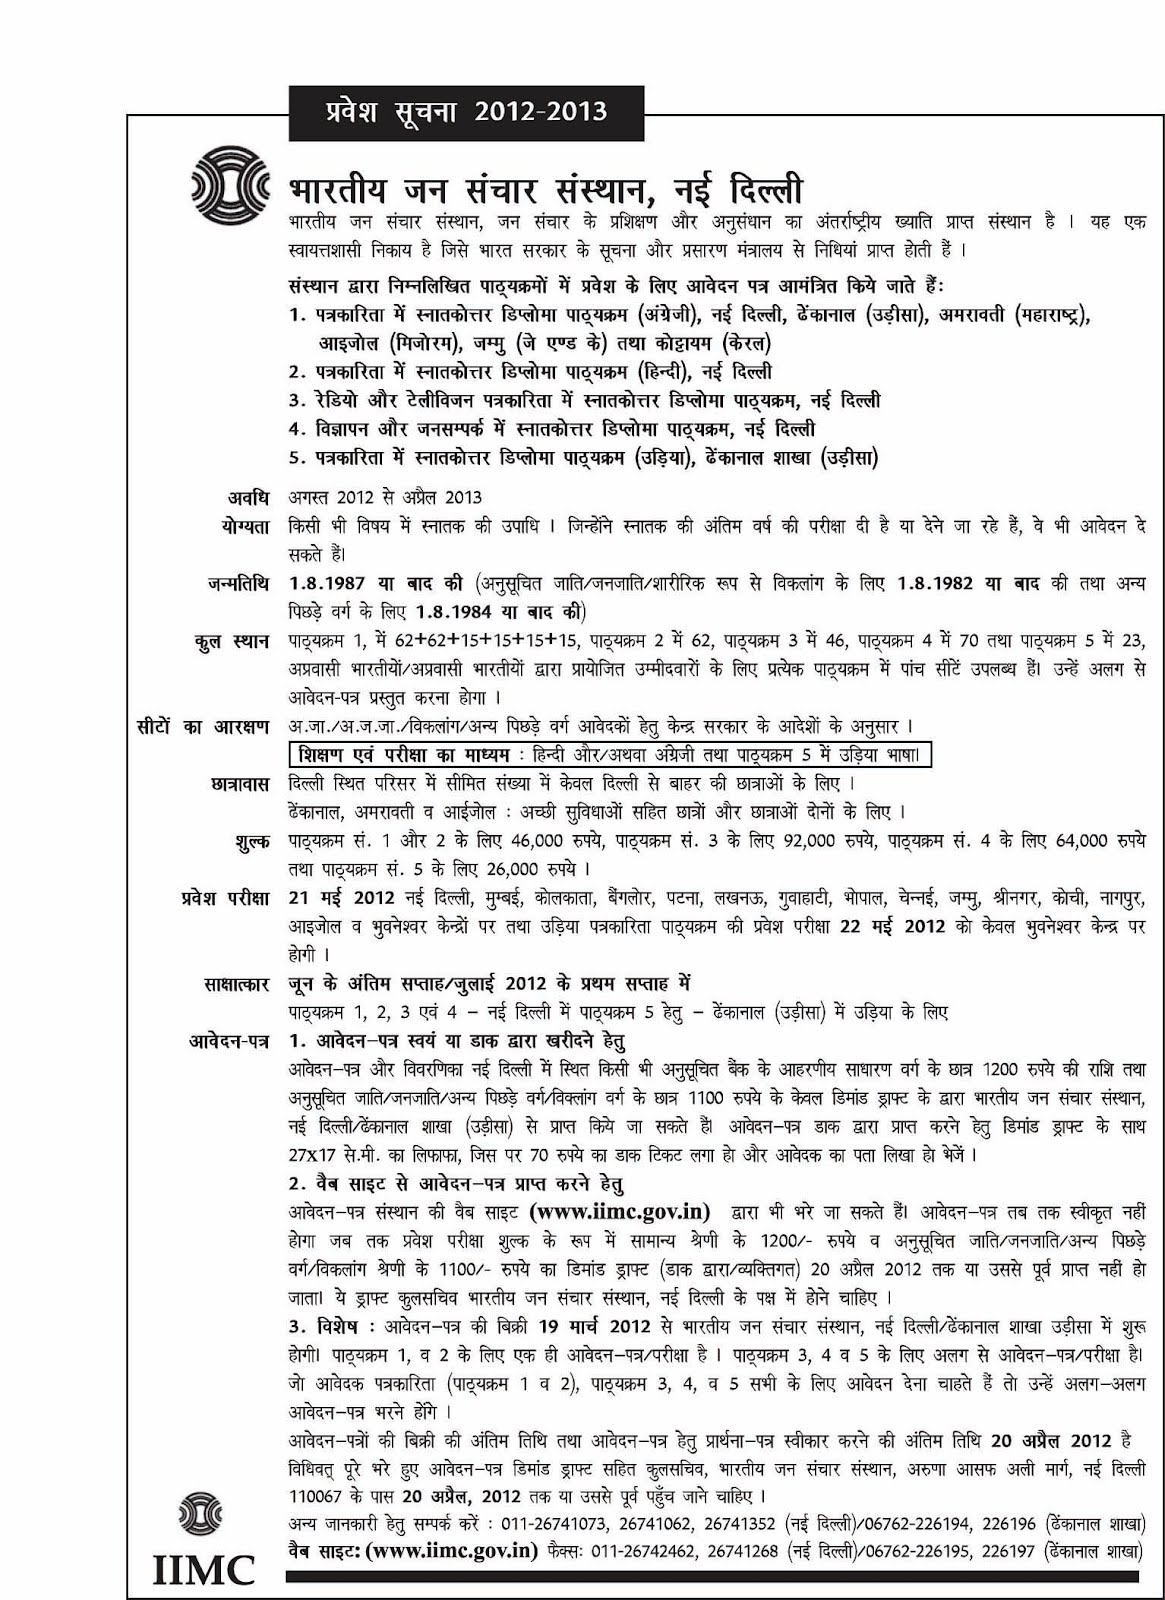 language essay essay on hindi language essay on our national  essays on language buy original essays online essay on terrorism in hindi language expert school buy